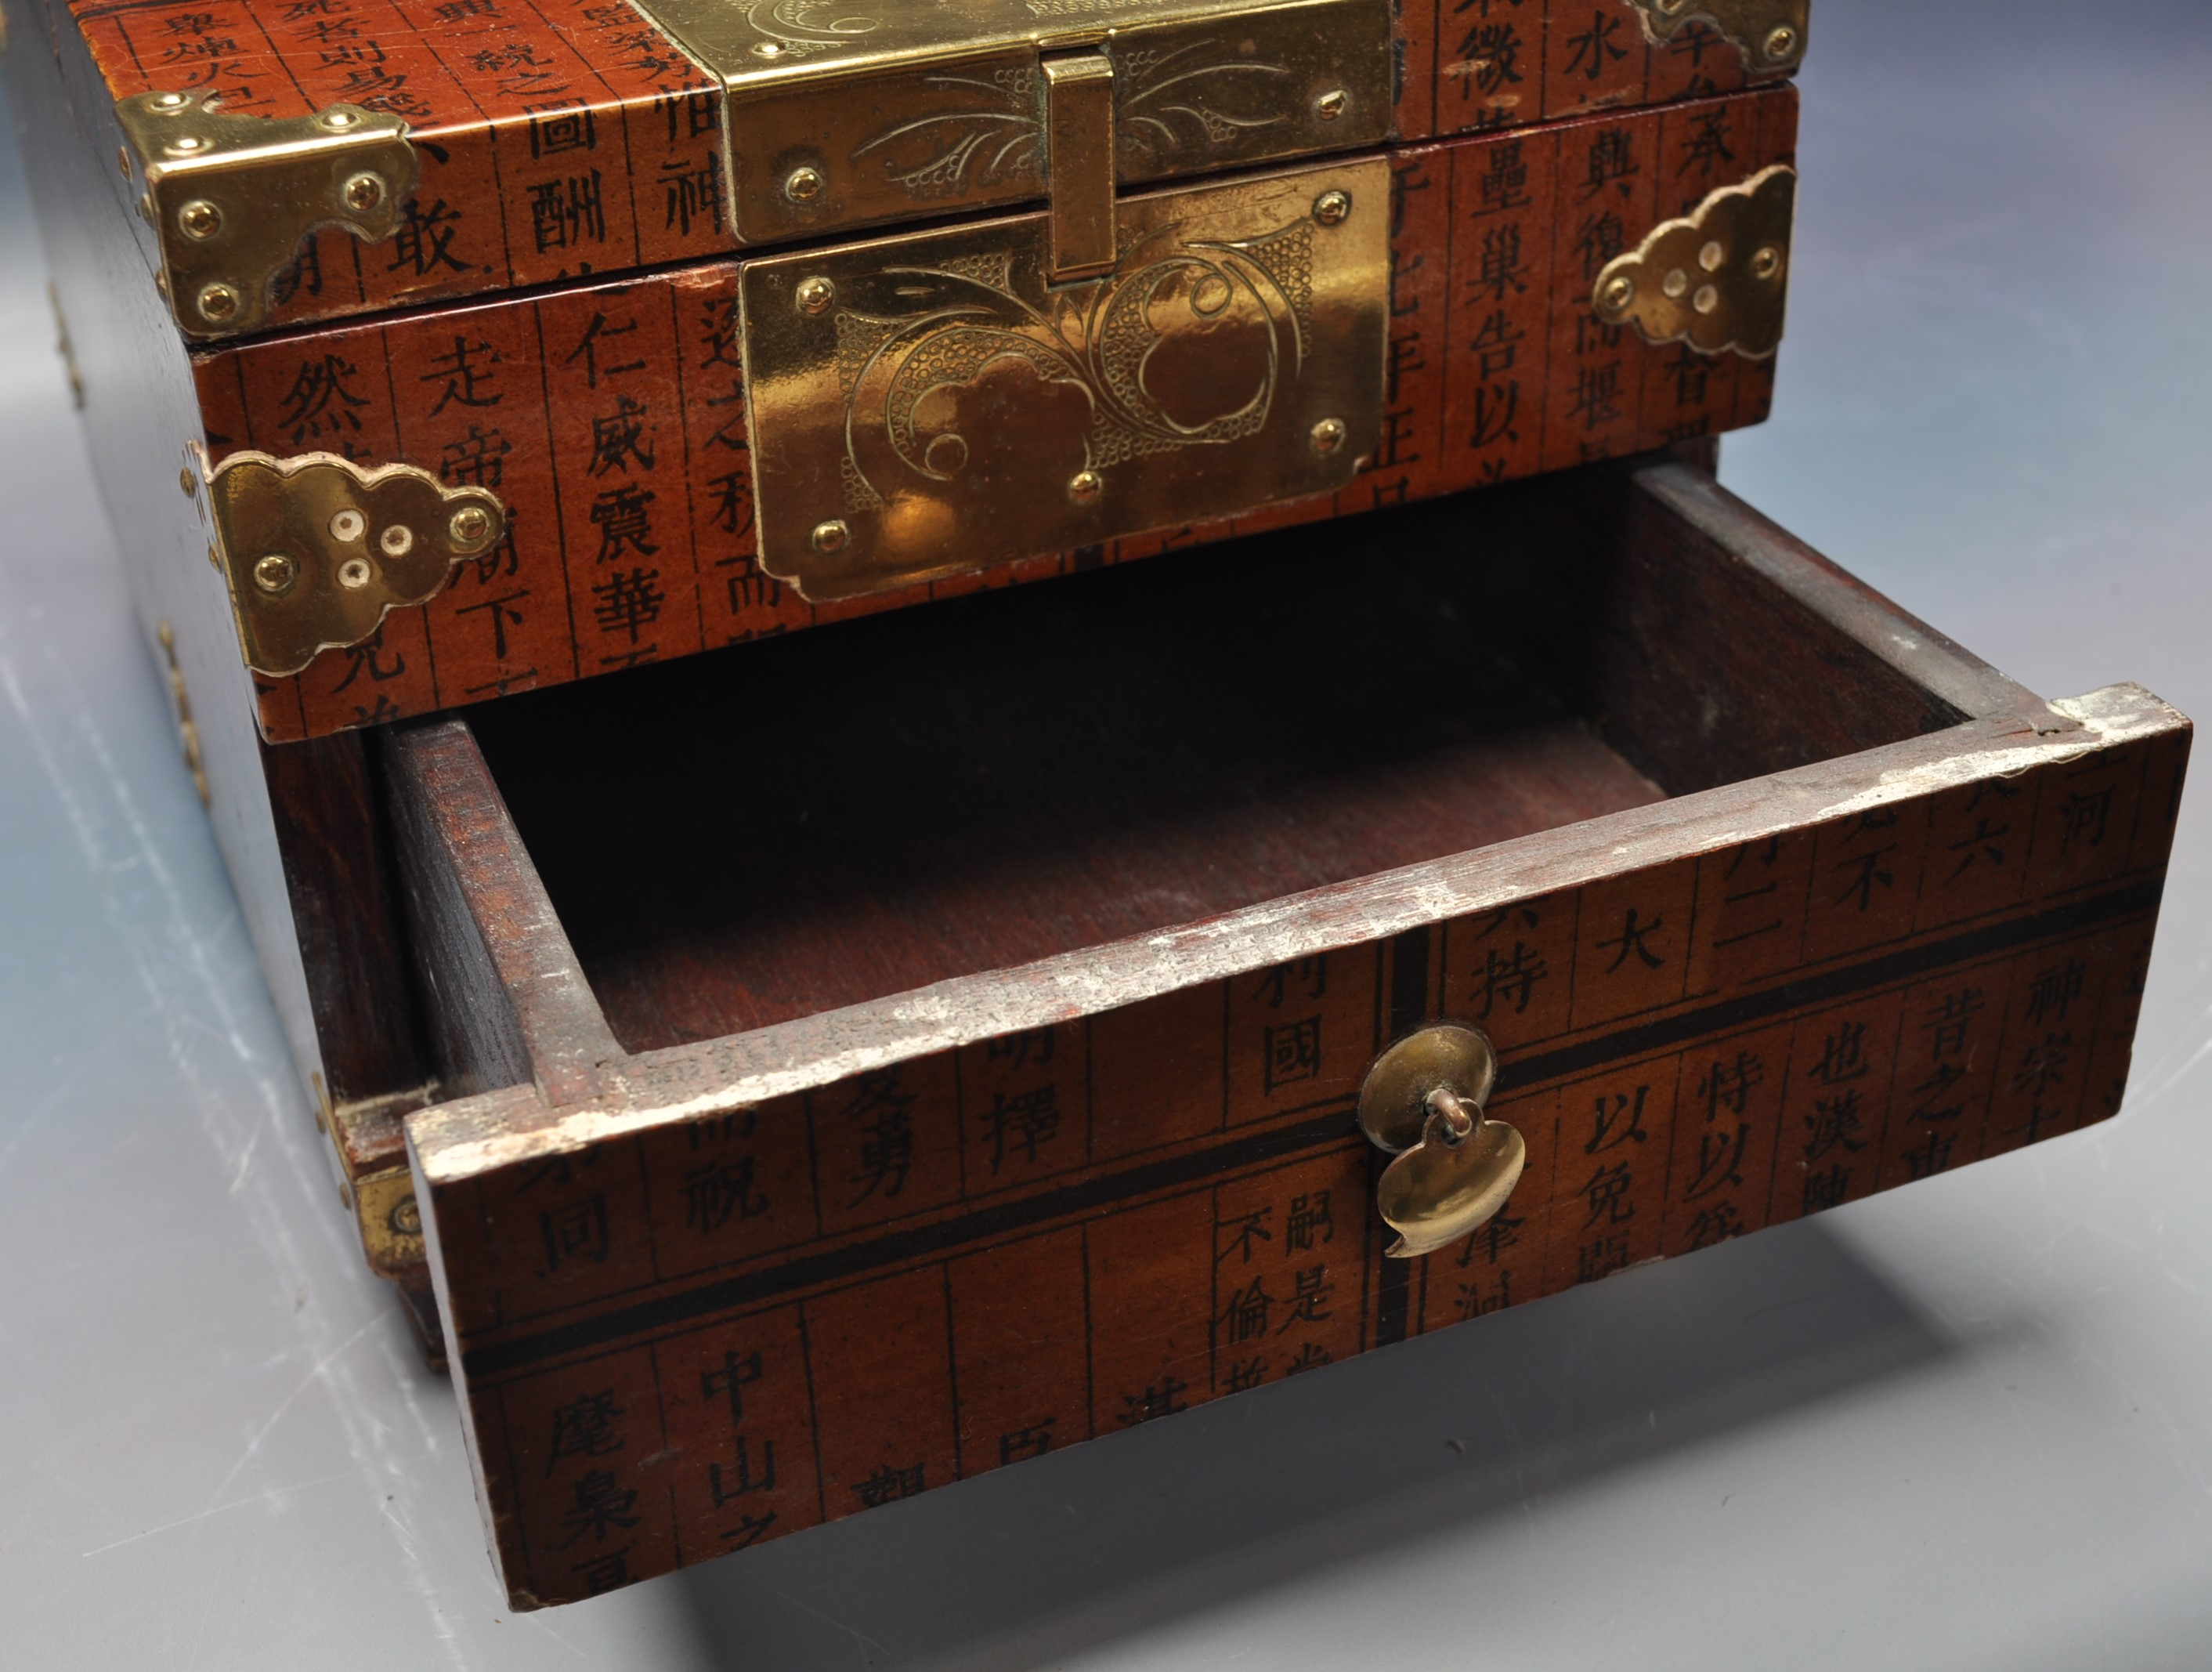 20TH CENTURY CHINESE LACQUER & BRASS BOUND CASKET - Image 2 of 4